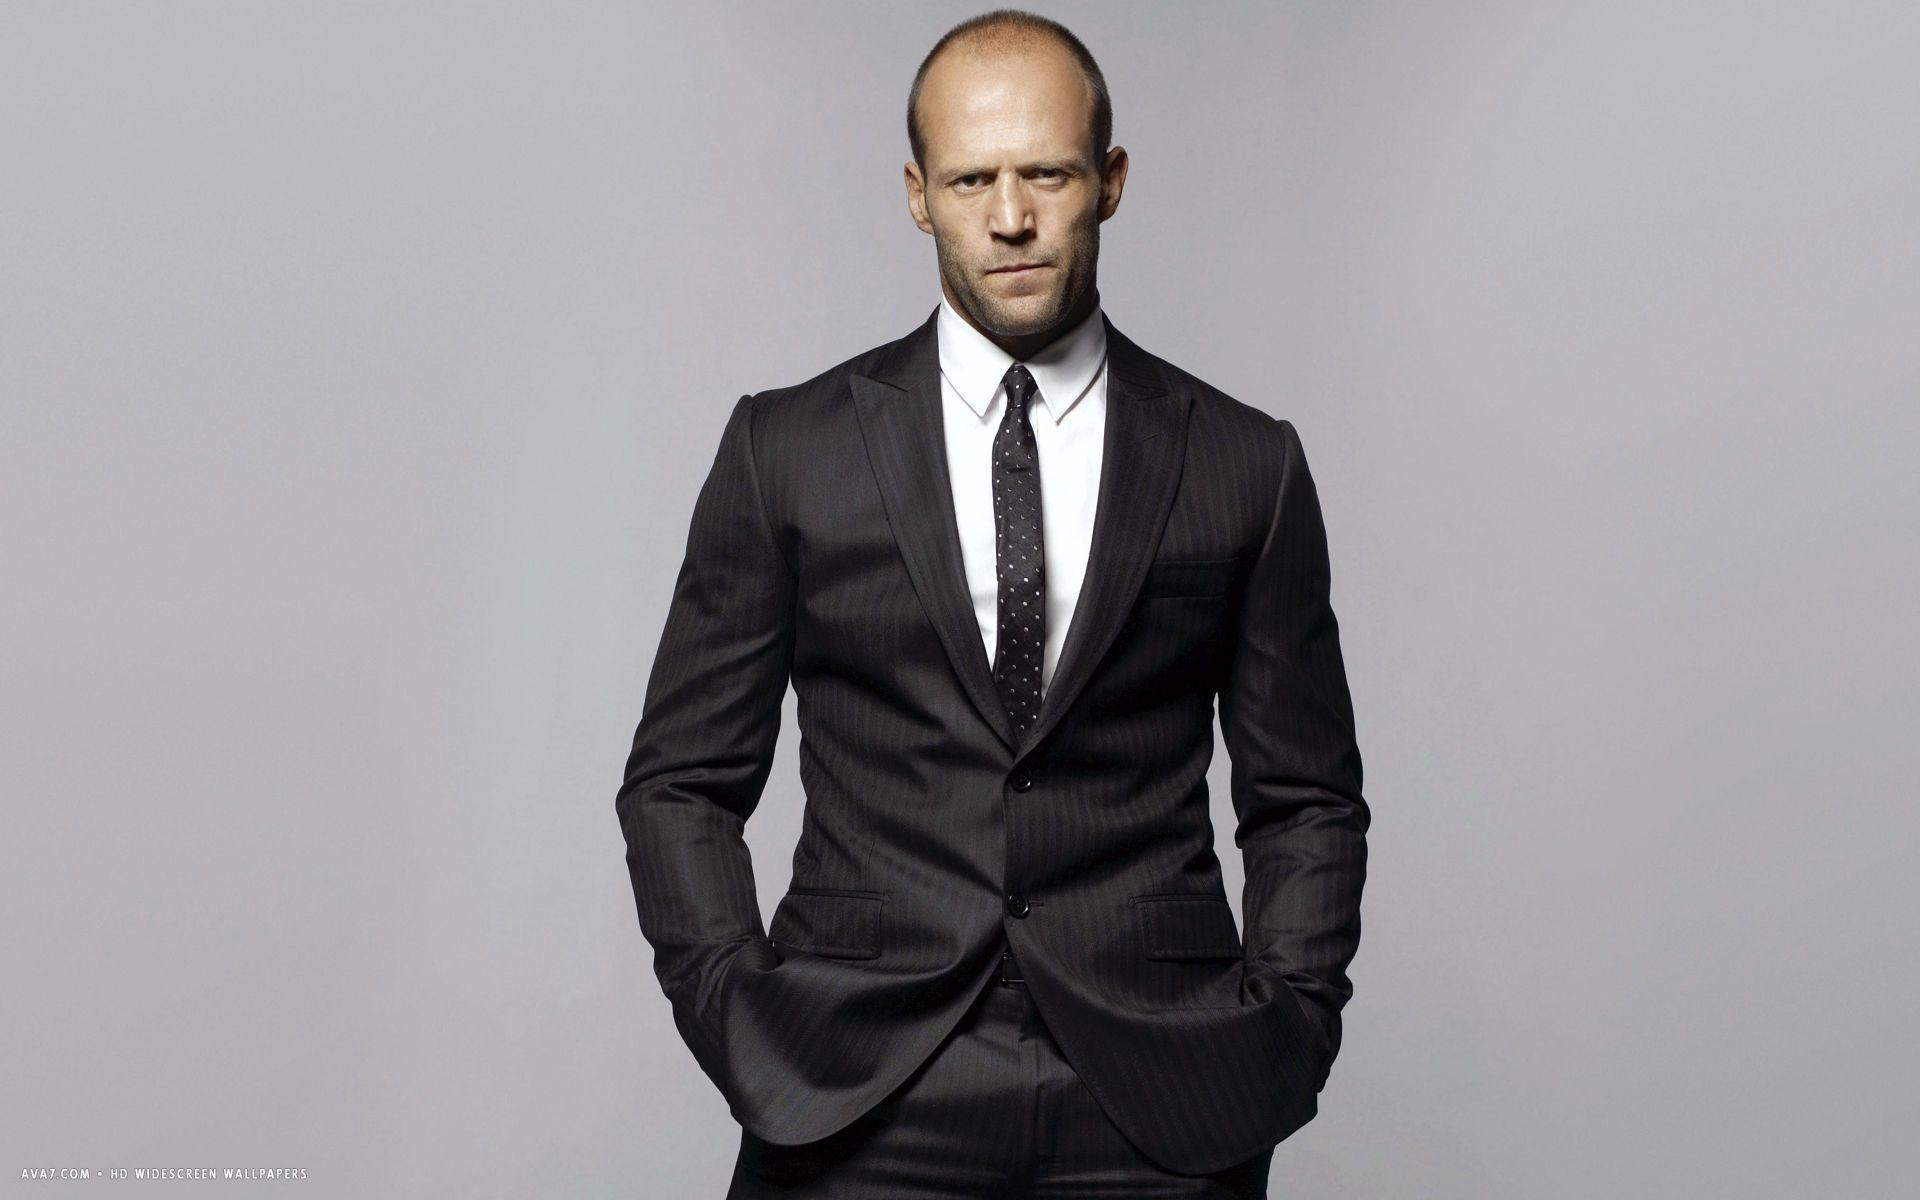 download Wallpapers Of Jason Statham [1920x1200] for your 1920x1200